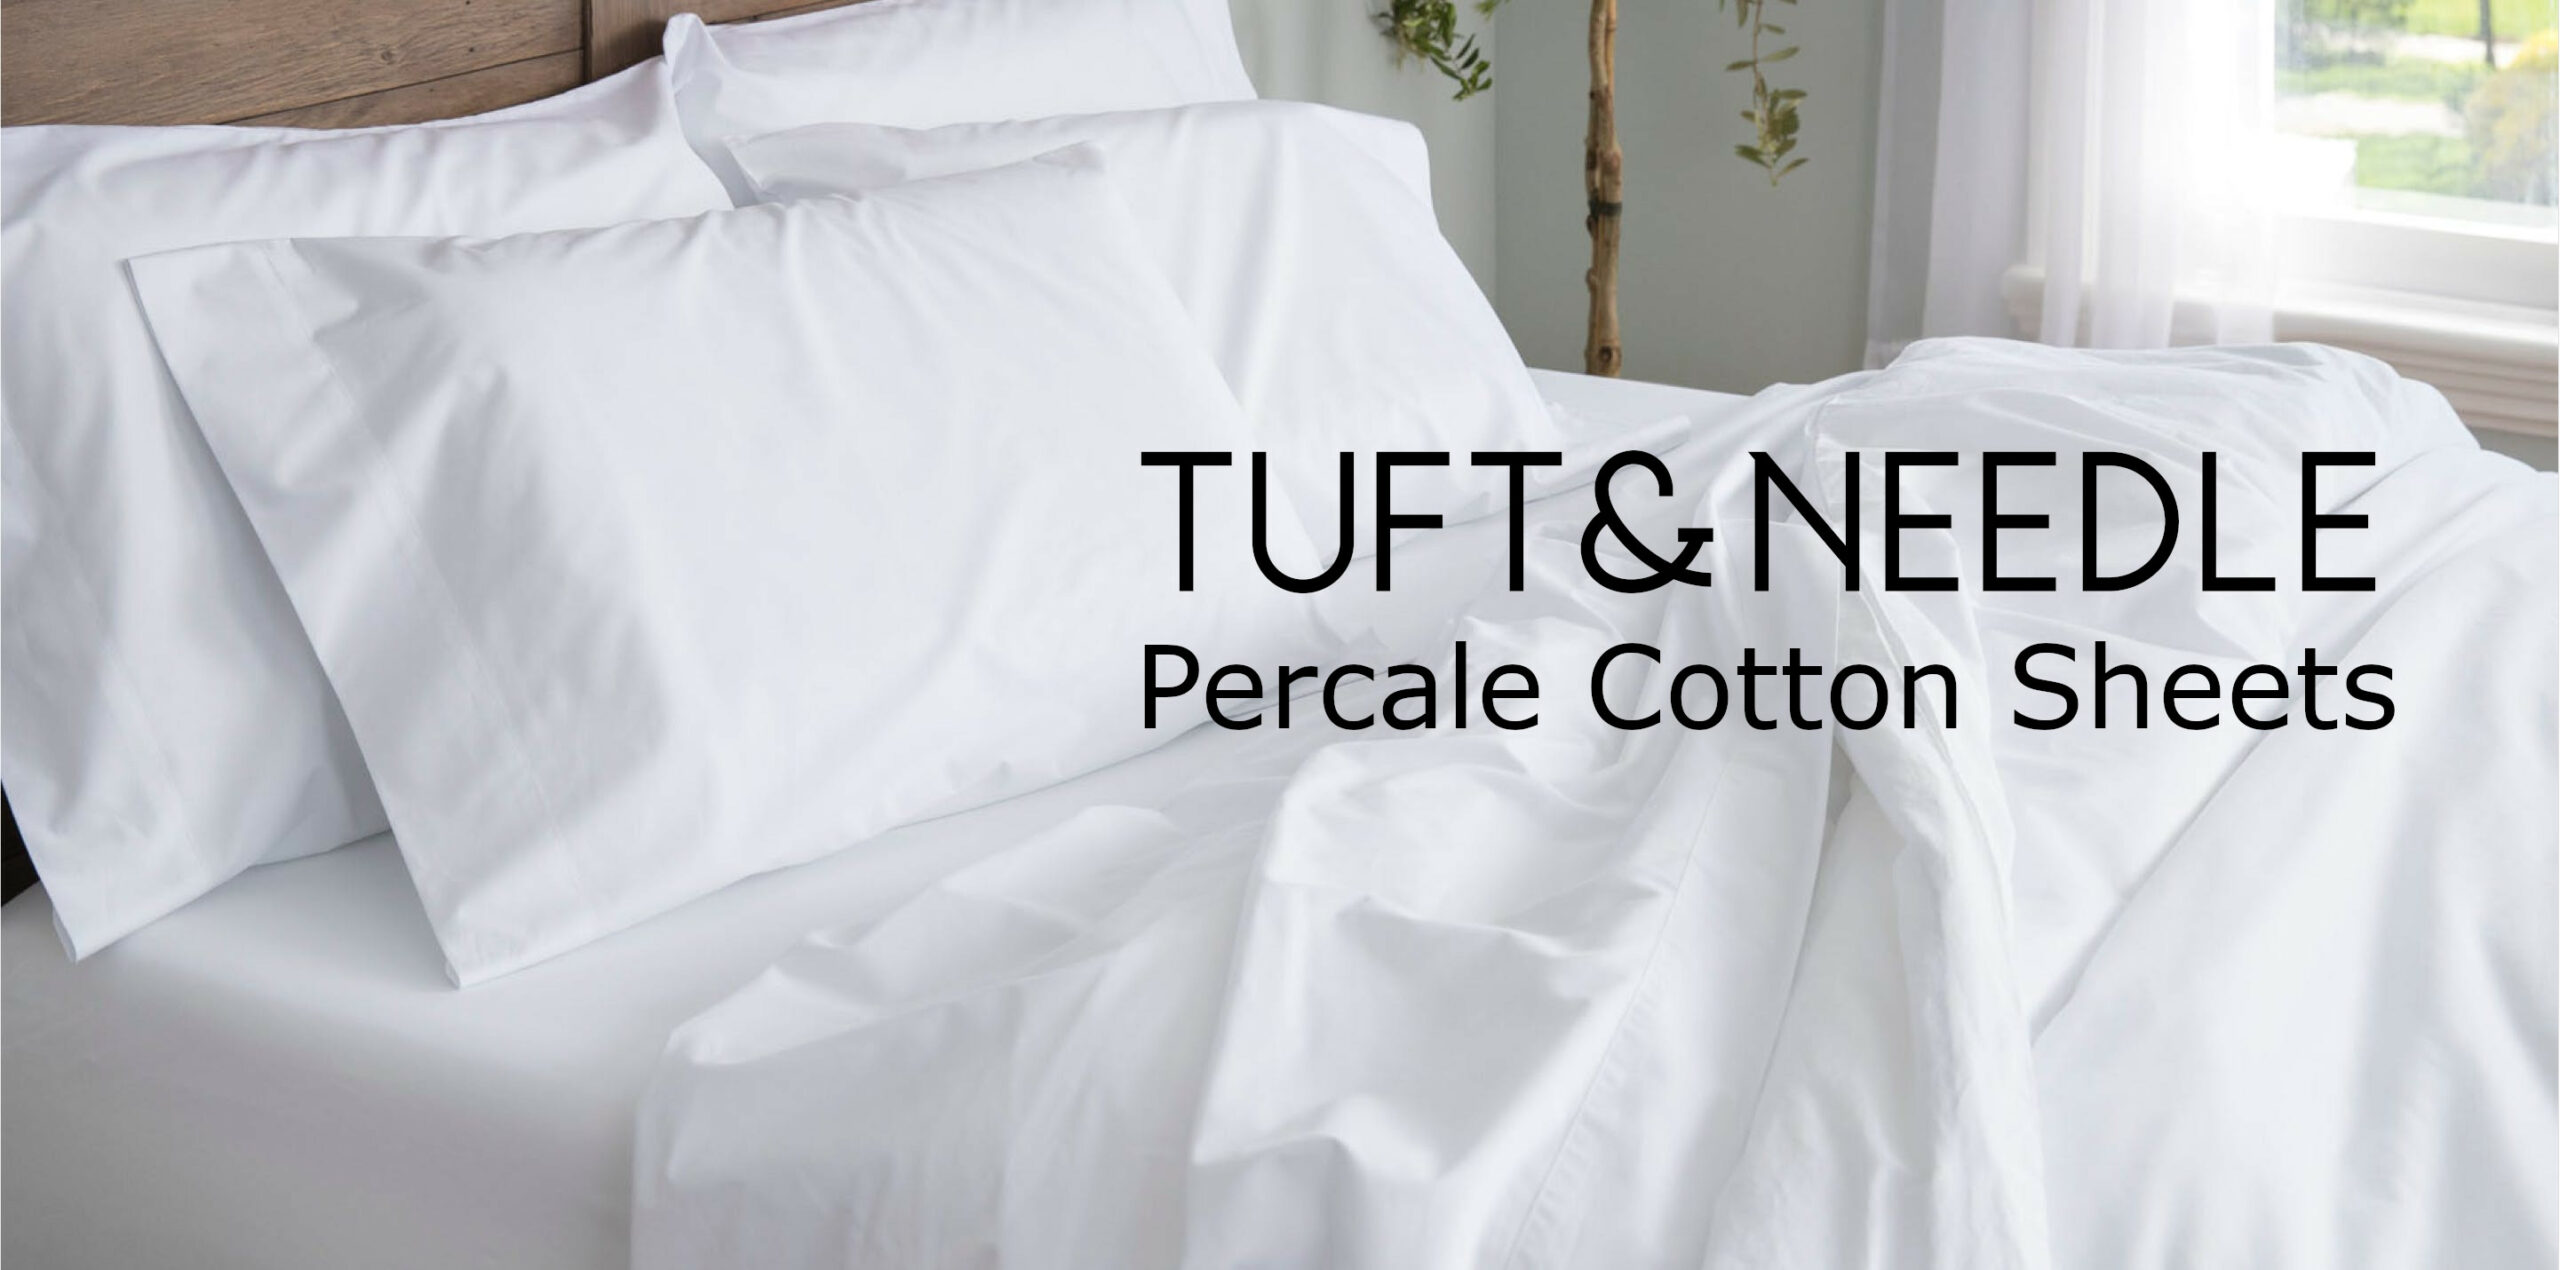 tuft and needle percale cotton sheet review